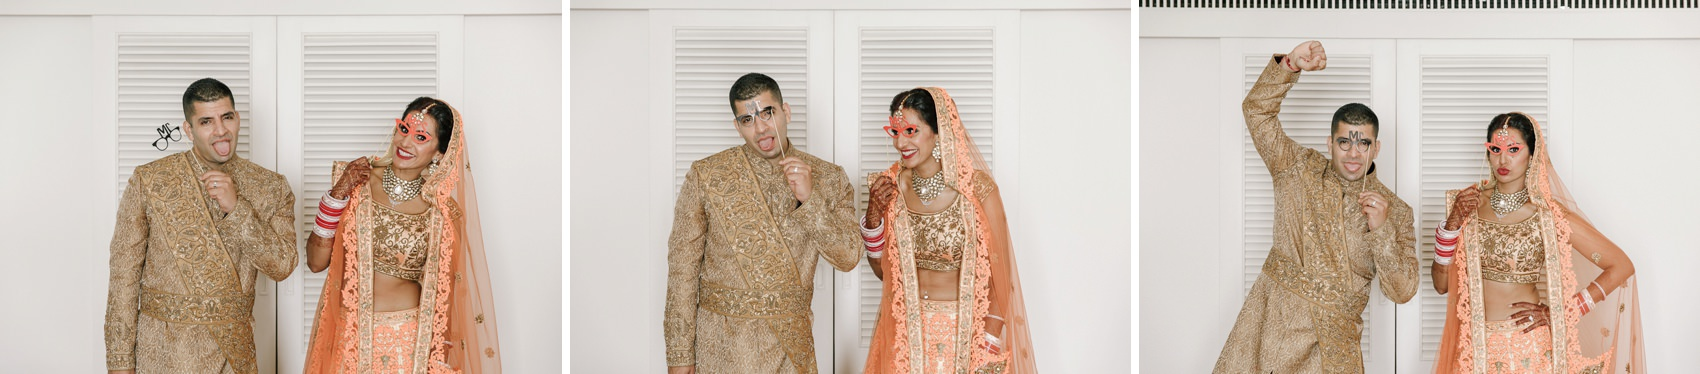 Indian-Wedding-Photography-Maala-Rohan_0266